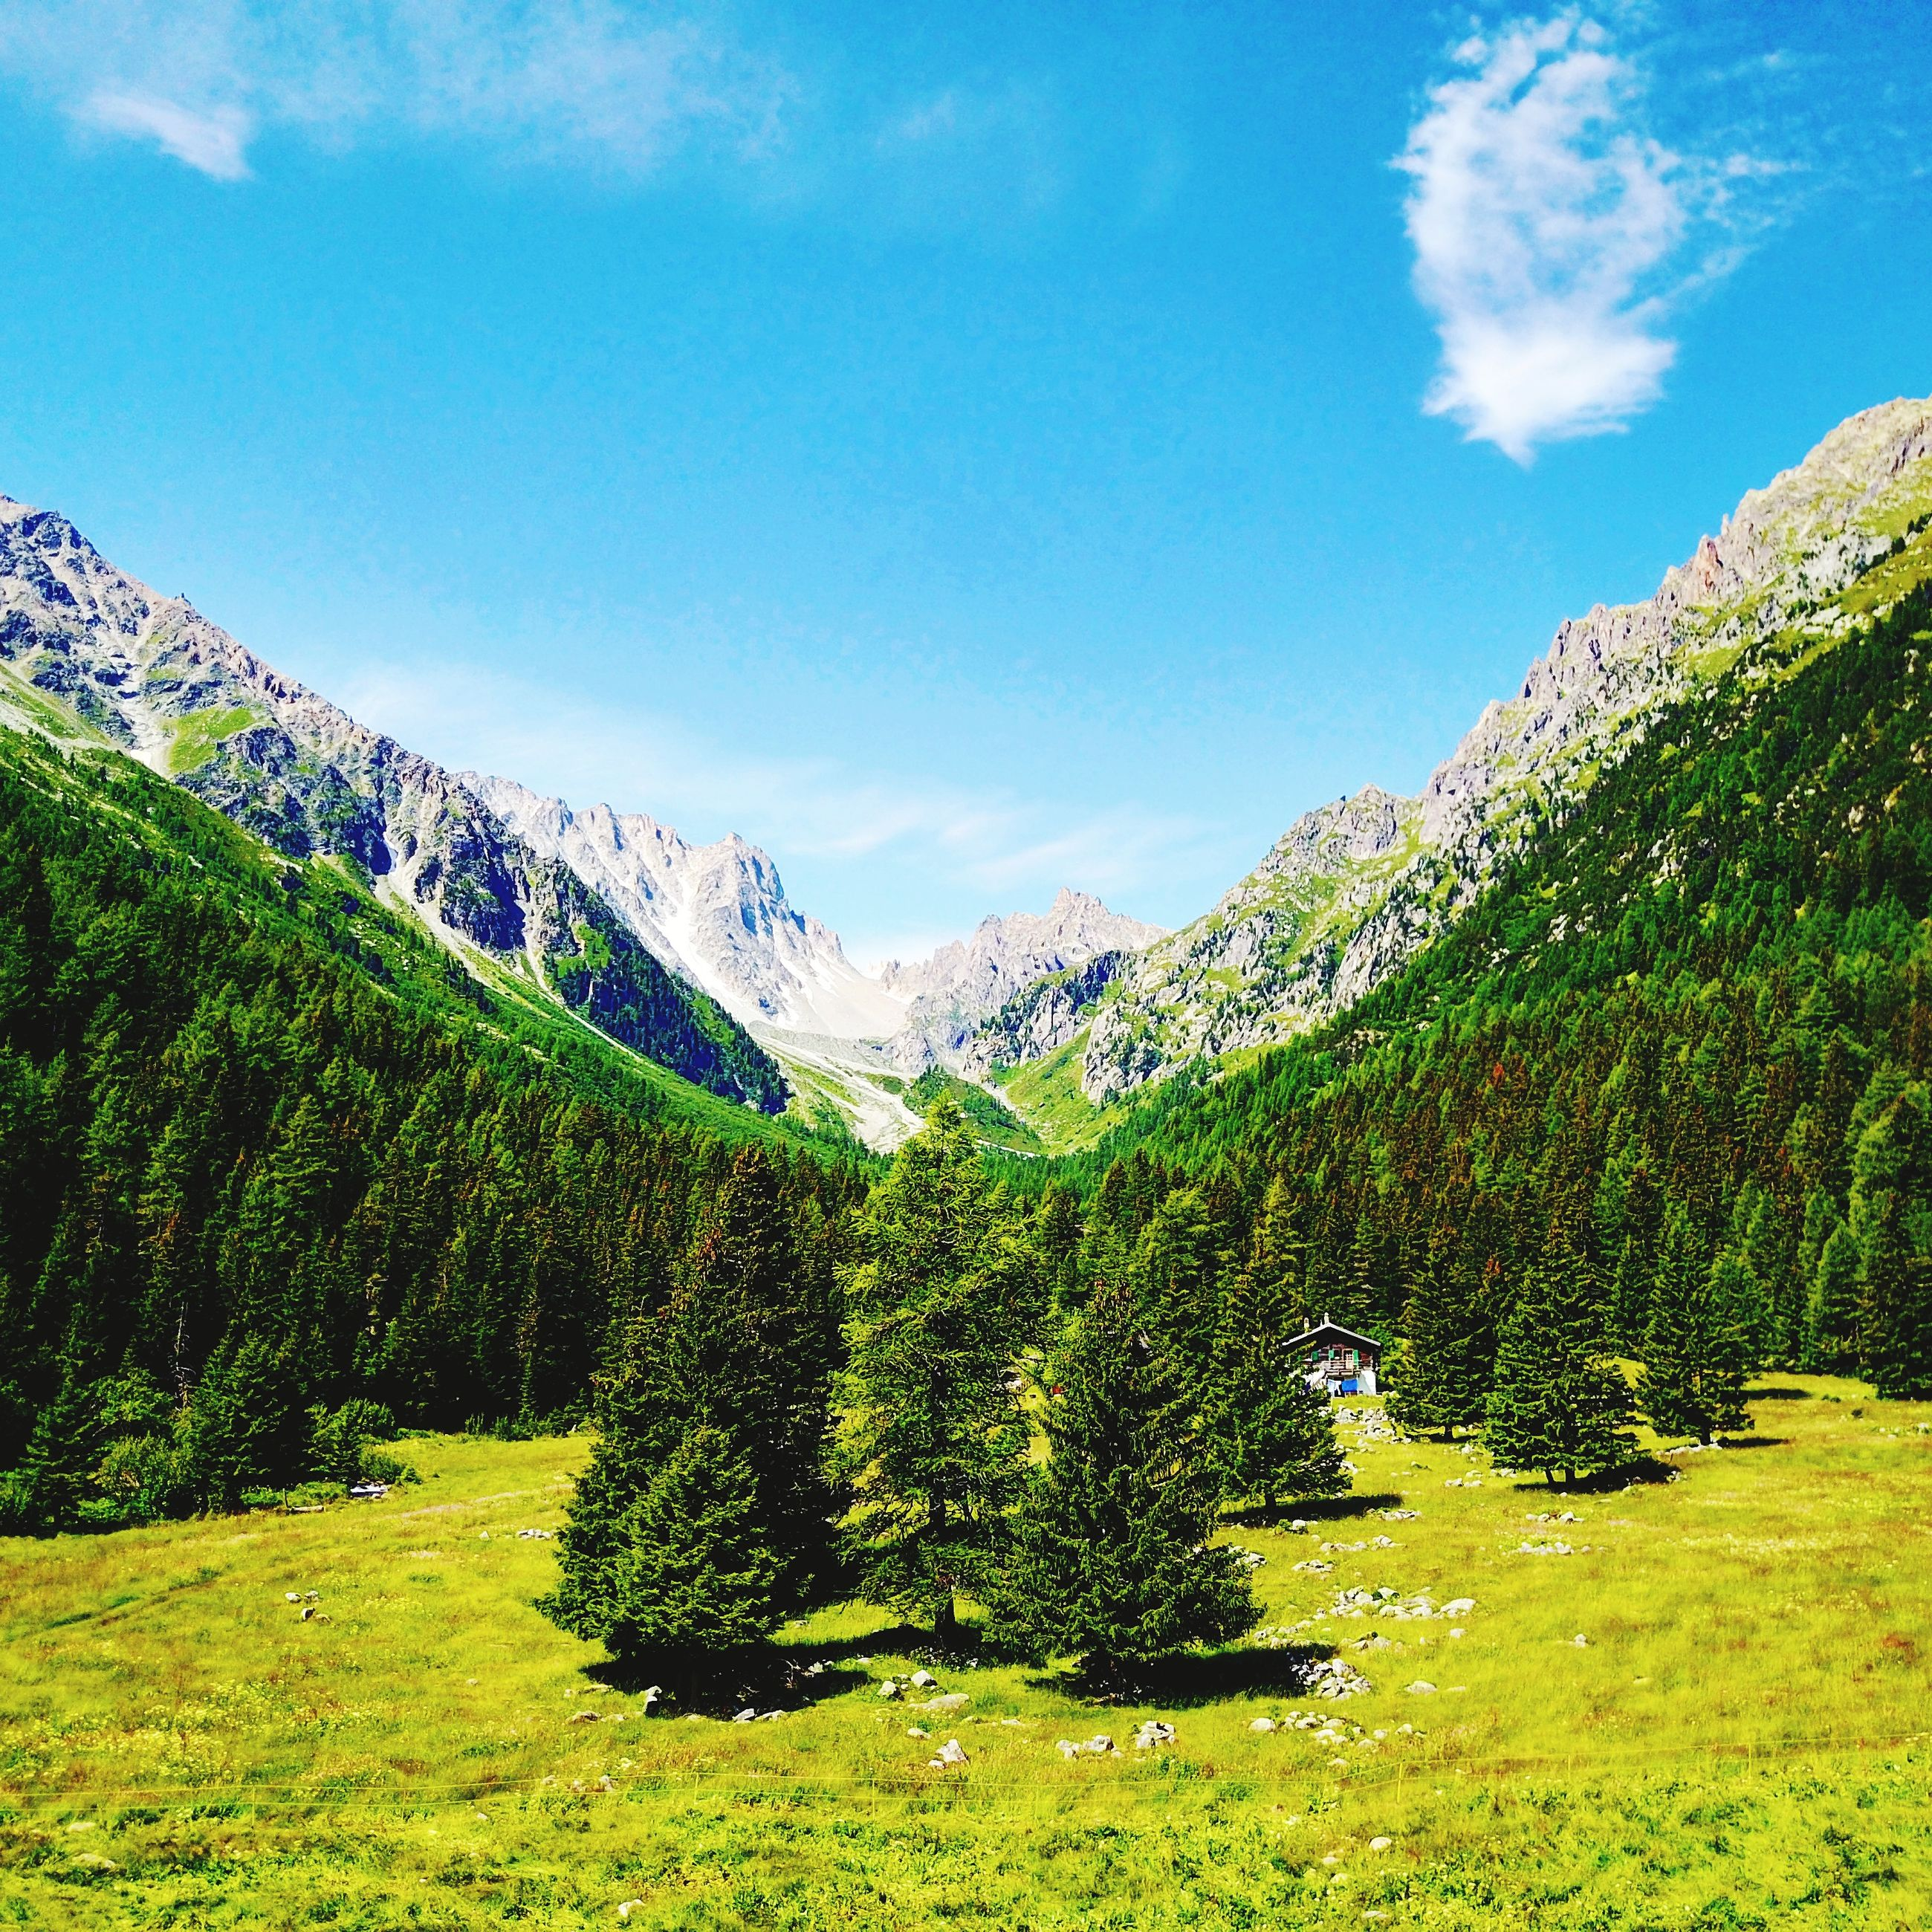 tranquil scene, scenics, mountain, tranquility, beauty in nature, nature, tree, green color, sky, day, landscape, outdoors, no people, mountain range, cloud - sky, growth, blue, forest